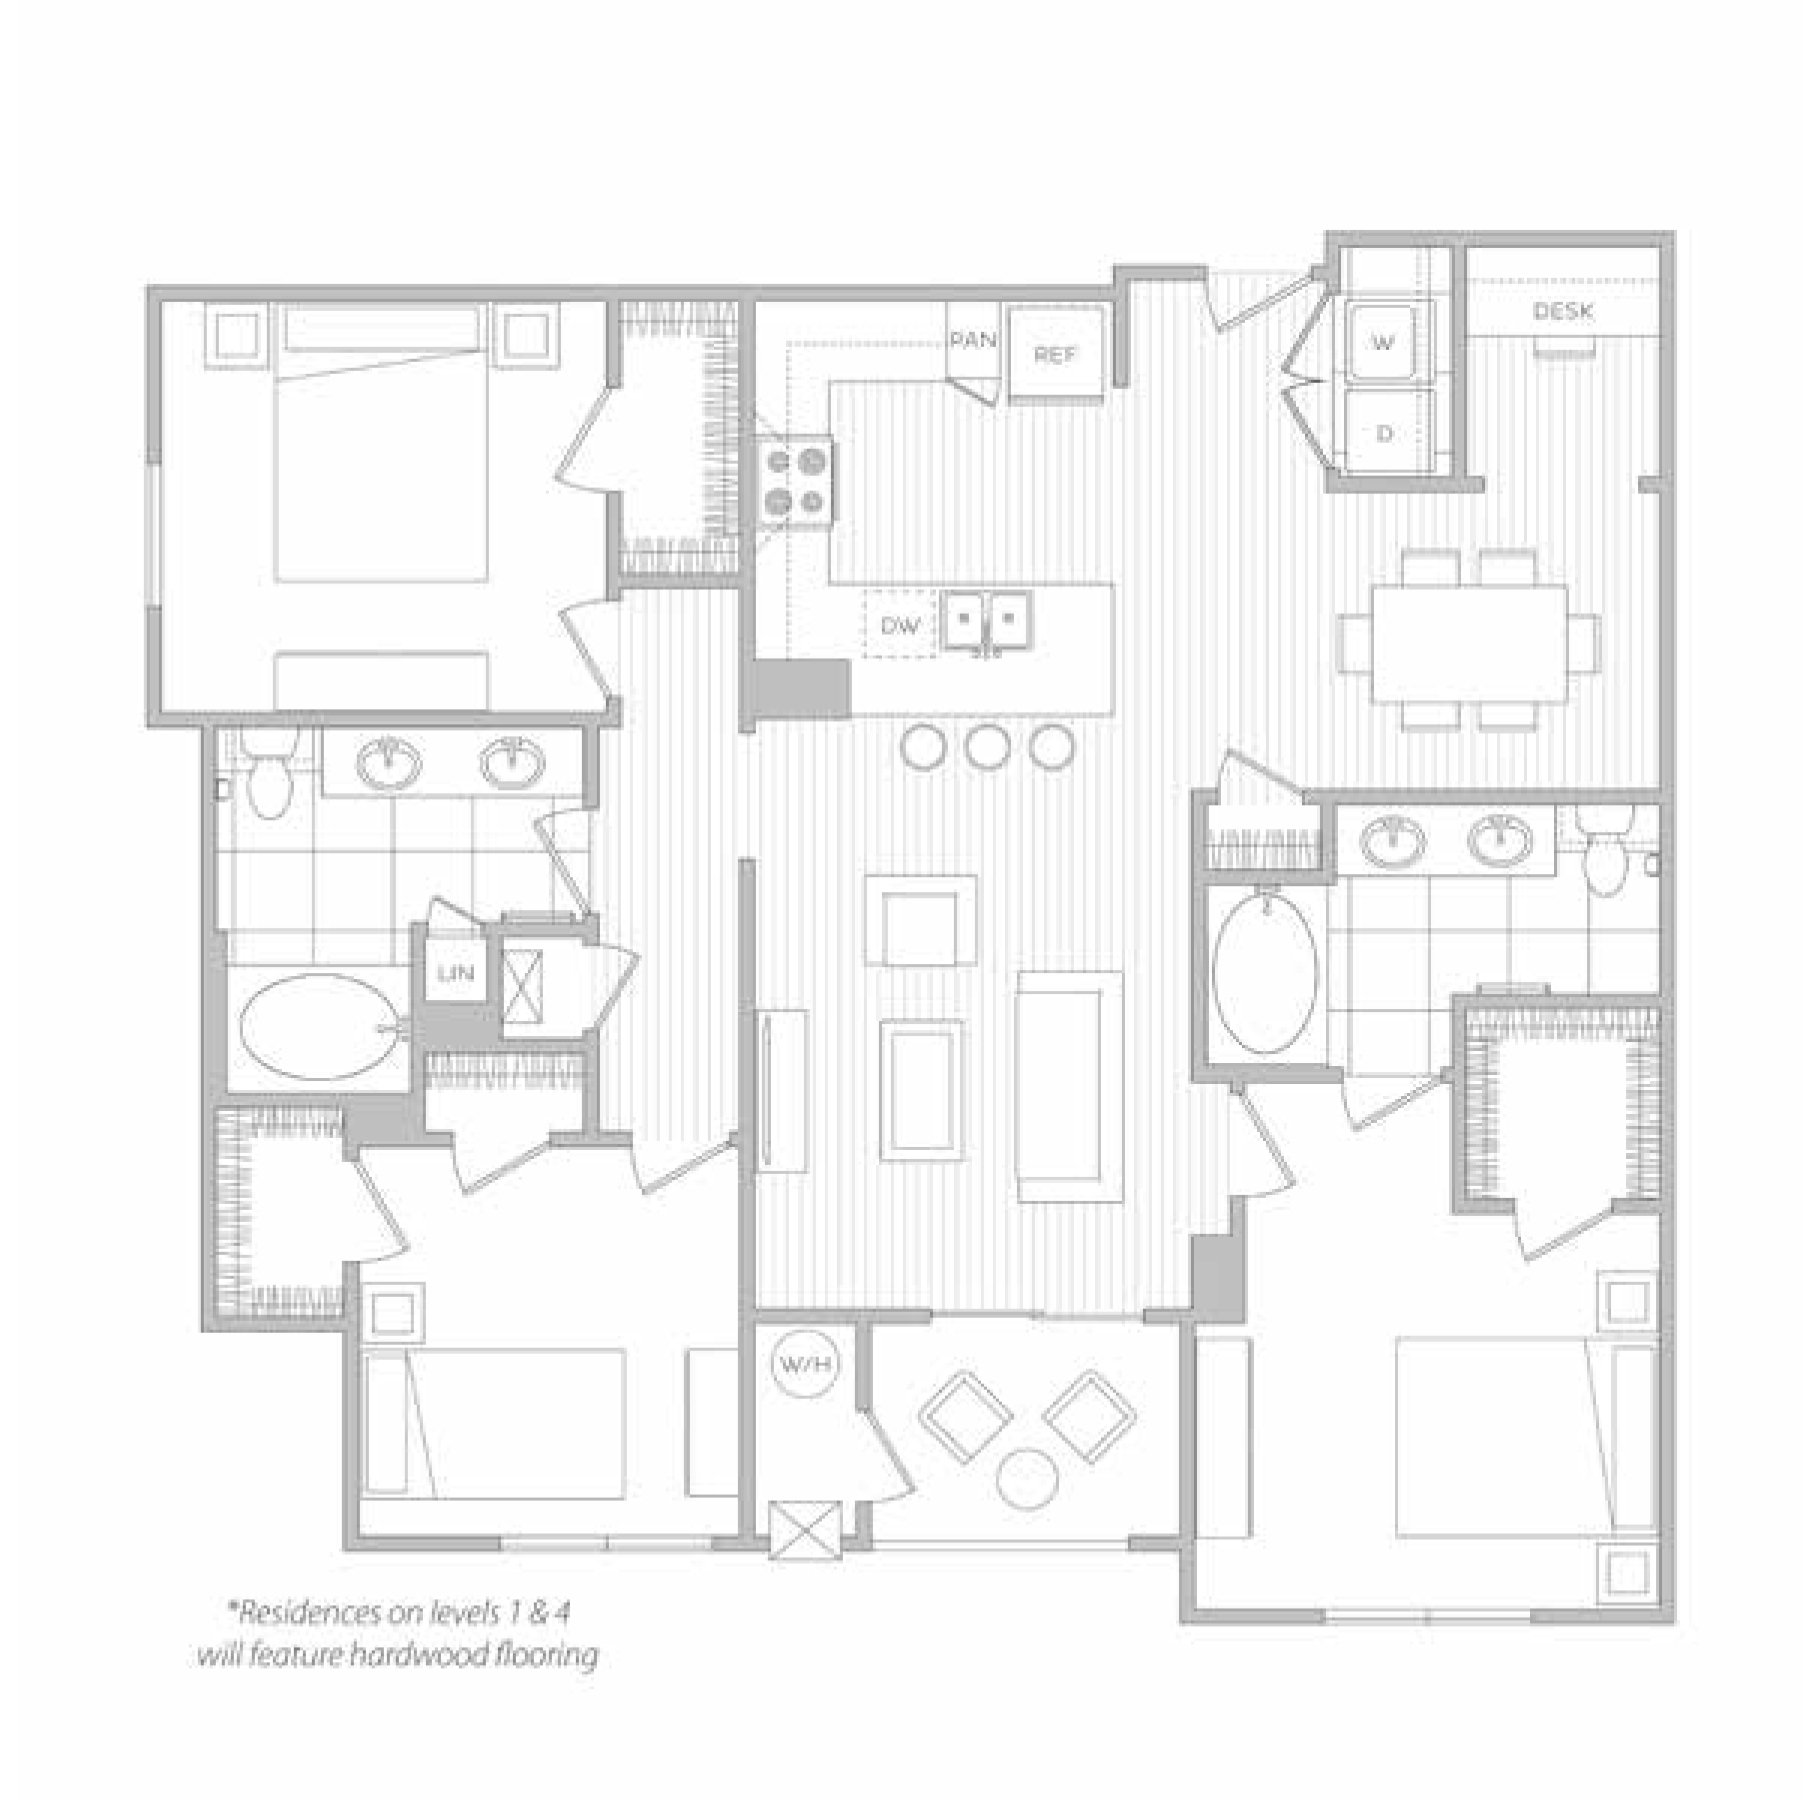 floor plan image of apartment 1202